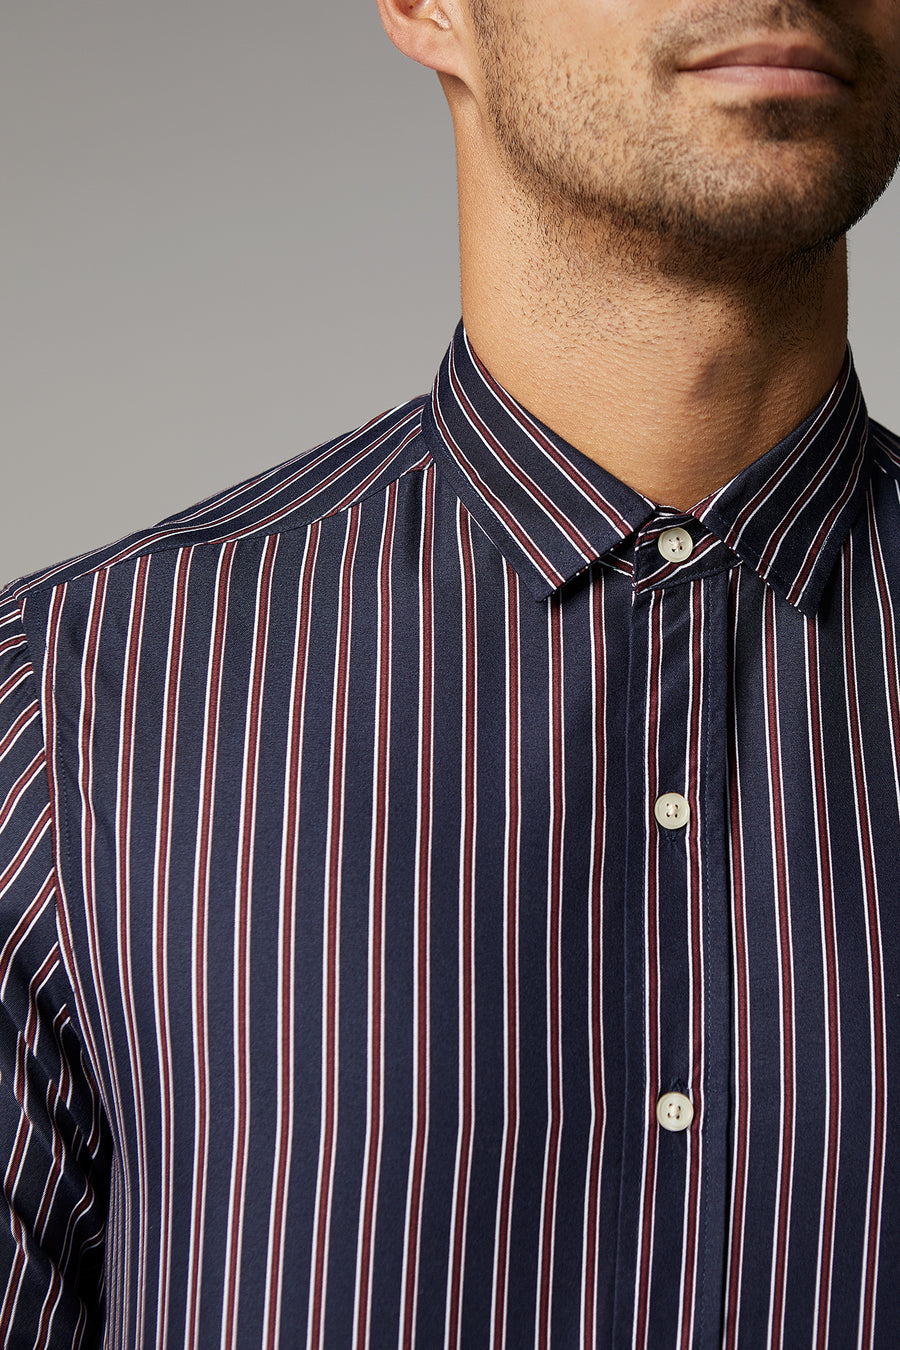 Ryan Navy/Burgundy Stripe Shirt